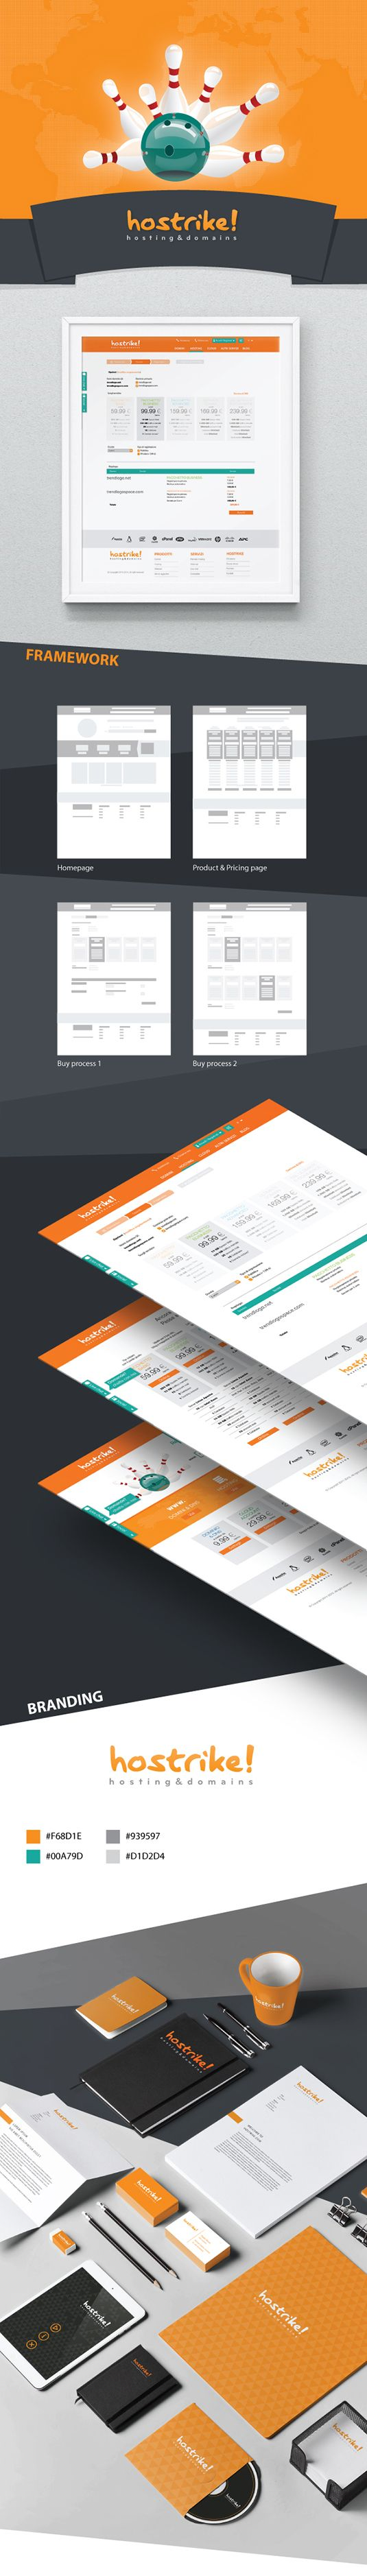 Communication agency Simpliza create the brand identity and website for Hostrike!, hosting and domains provider